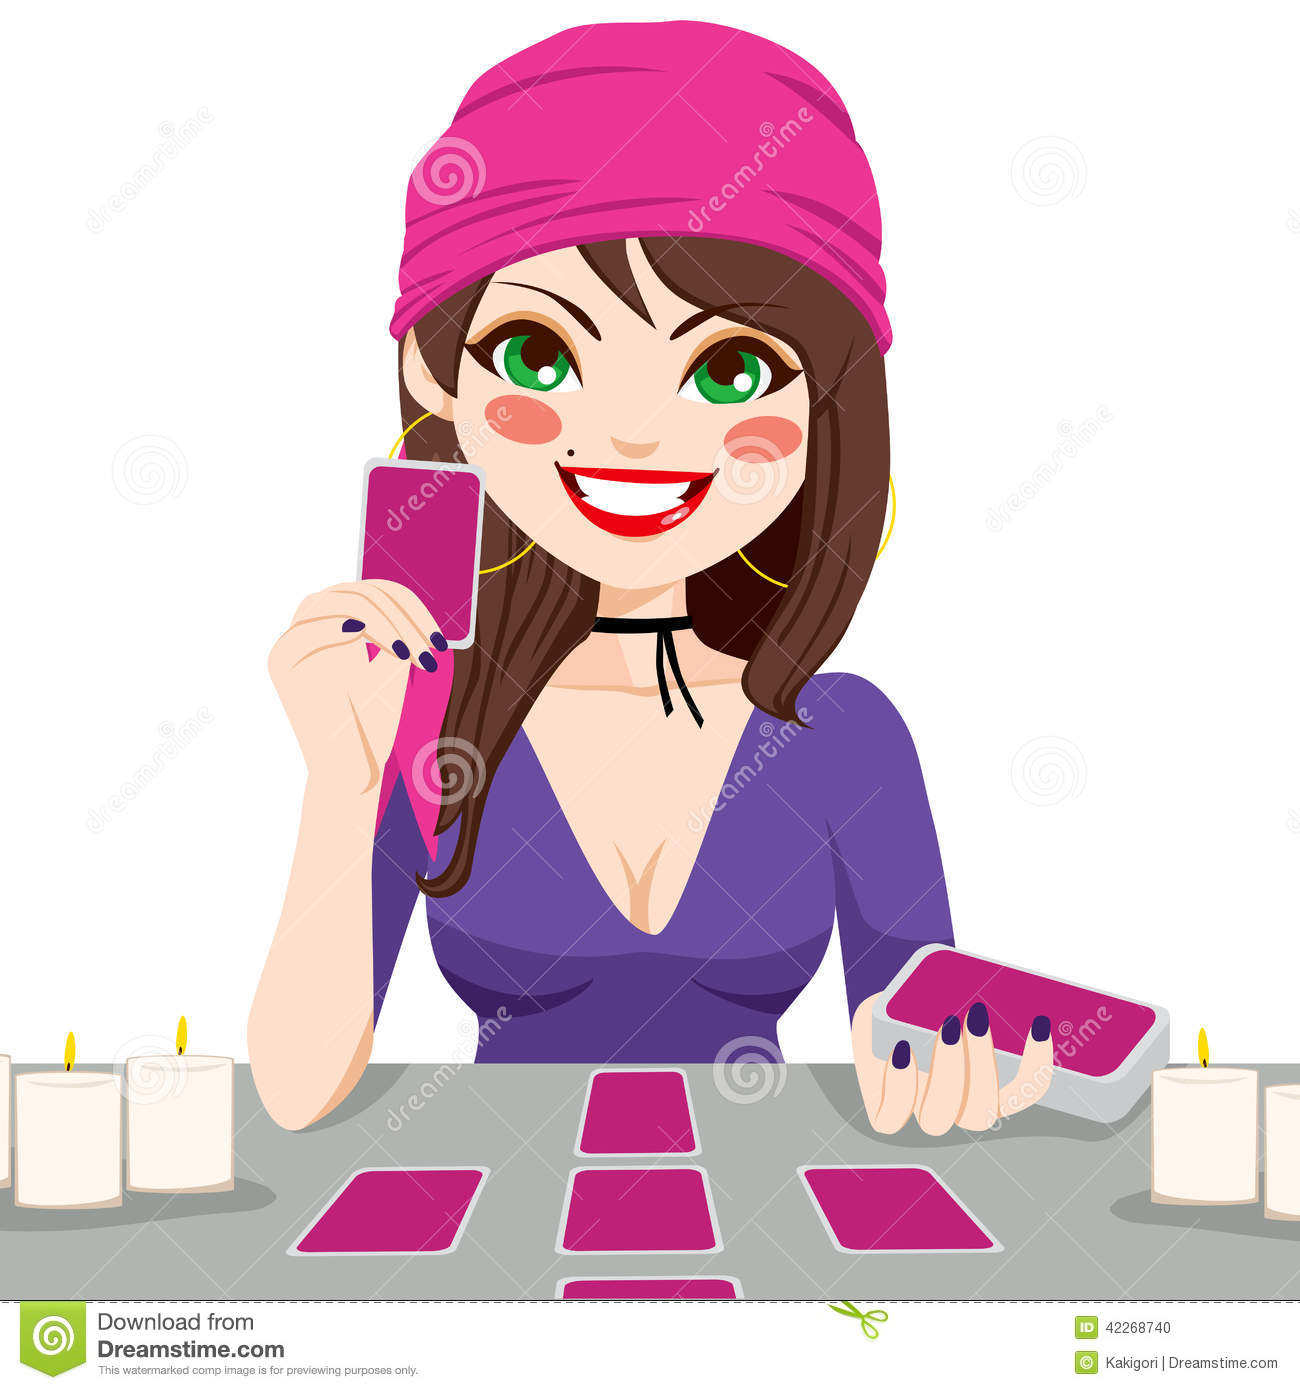 Psychic reading clipart.